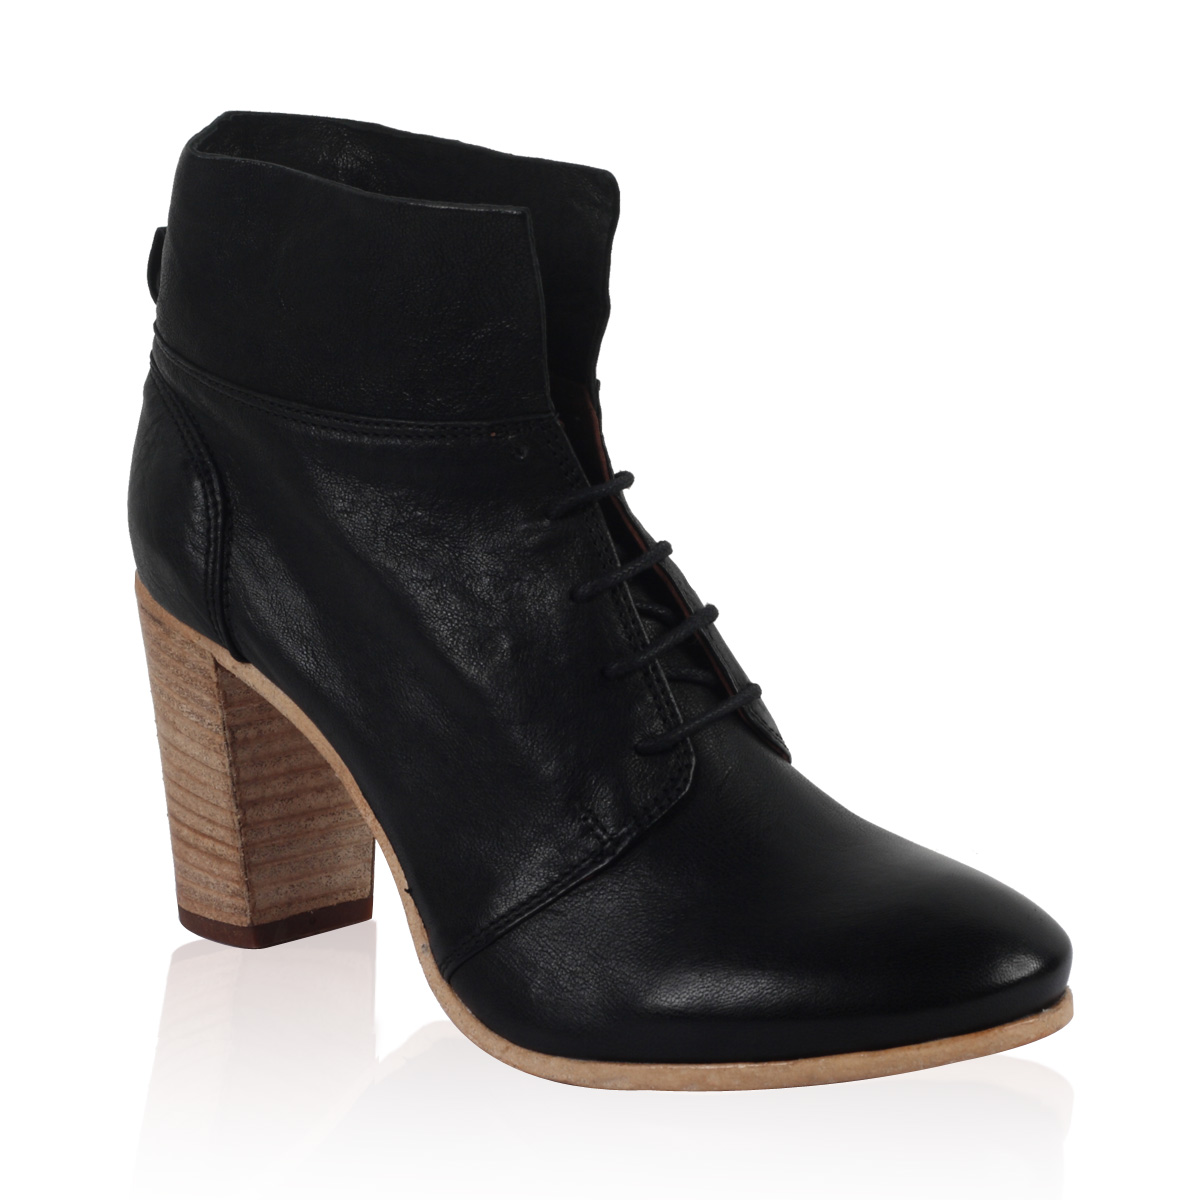 PIED-A-TERRE-LADIES-PANNA-WOMENS-BLACK-BLOCK-HEEL-LACE-UP-ANKLE-BOOTS-SIZE-3-8